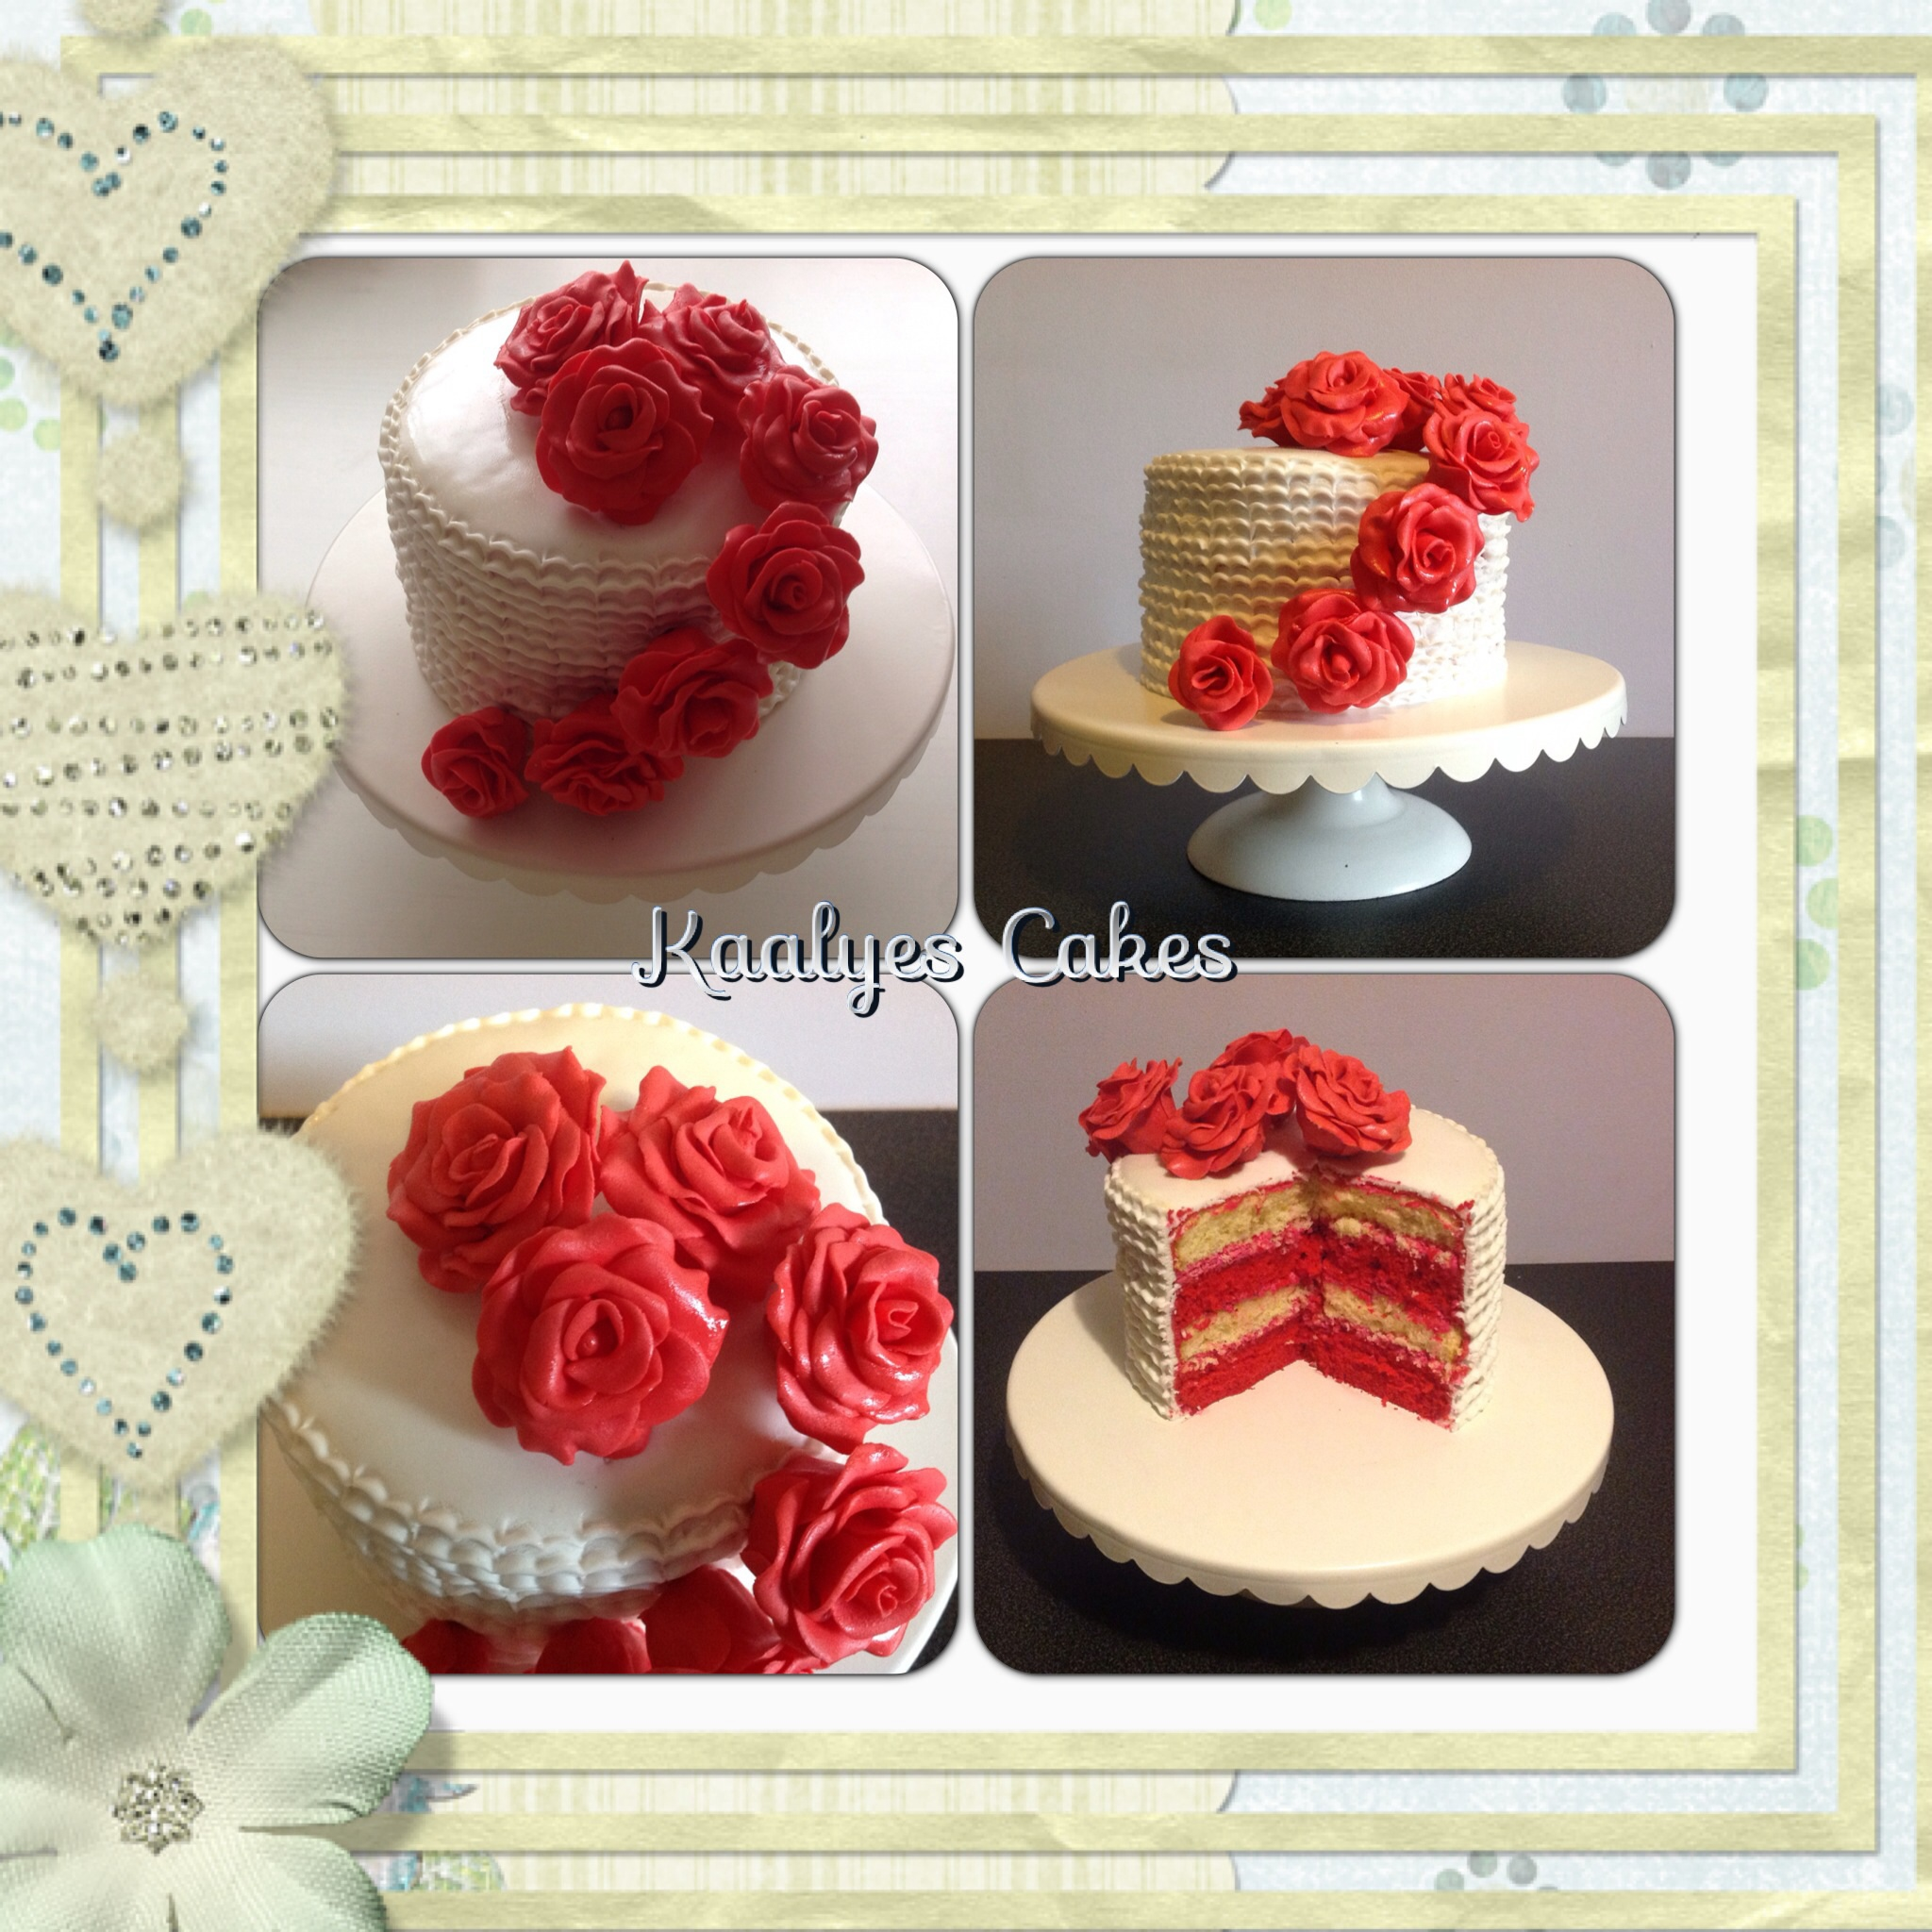 g teau romantique roses rouges photo de fondant cakes g teaux d co p te sucre kaalyes cakes. Black Bedroom Furniture Sets. Home Design Ideas